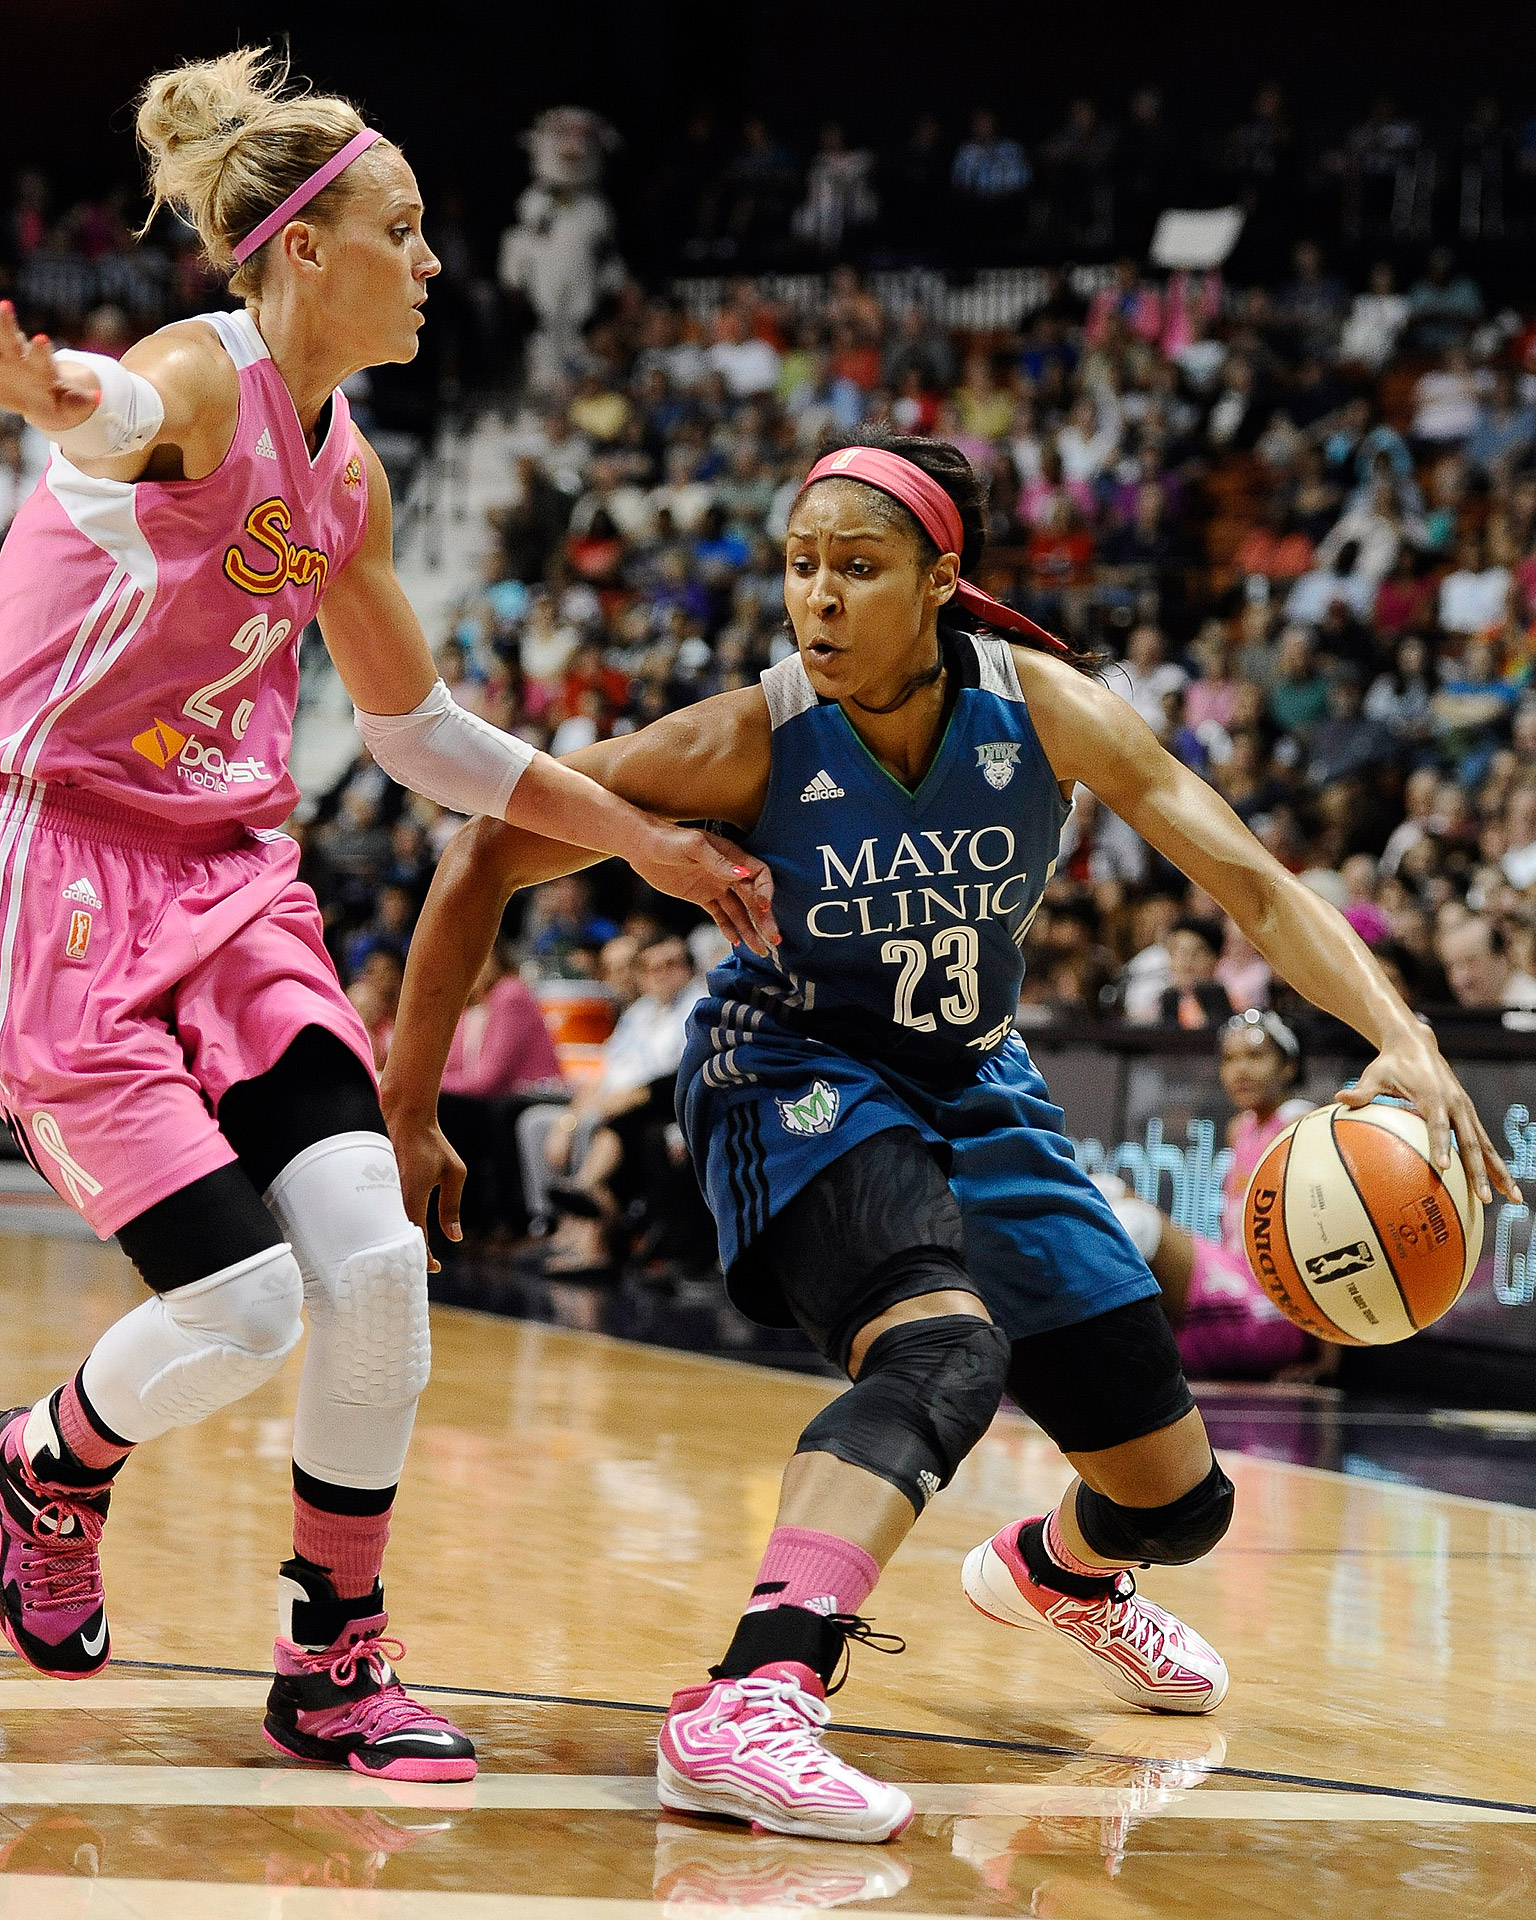 The Connecticut Sun's Katie Douglas guards the Minnesota Lynx's Maya Moore during their WNBA basketball game in Uncasville, Connecticut. Moore had 17 points, seven rebounds and four assists to help Minnesota beat Connecticut 76-65.